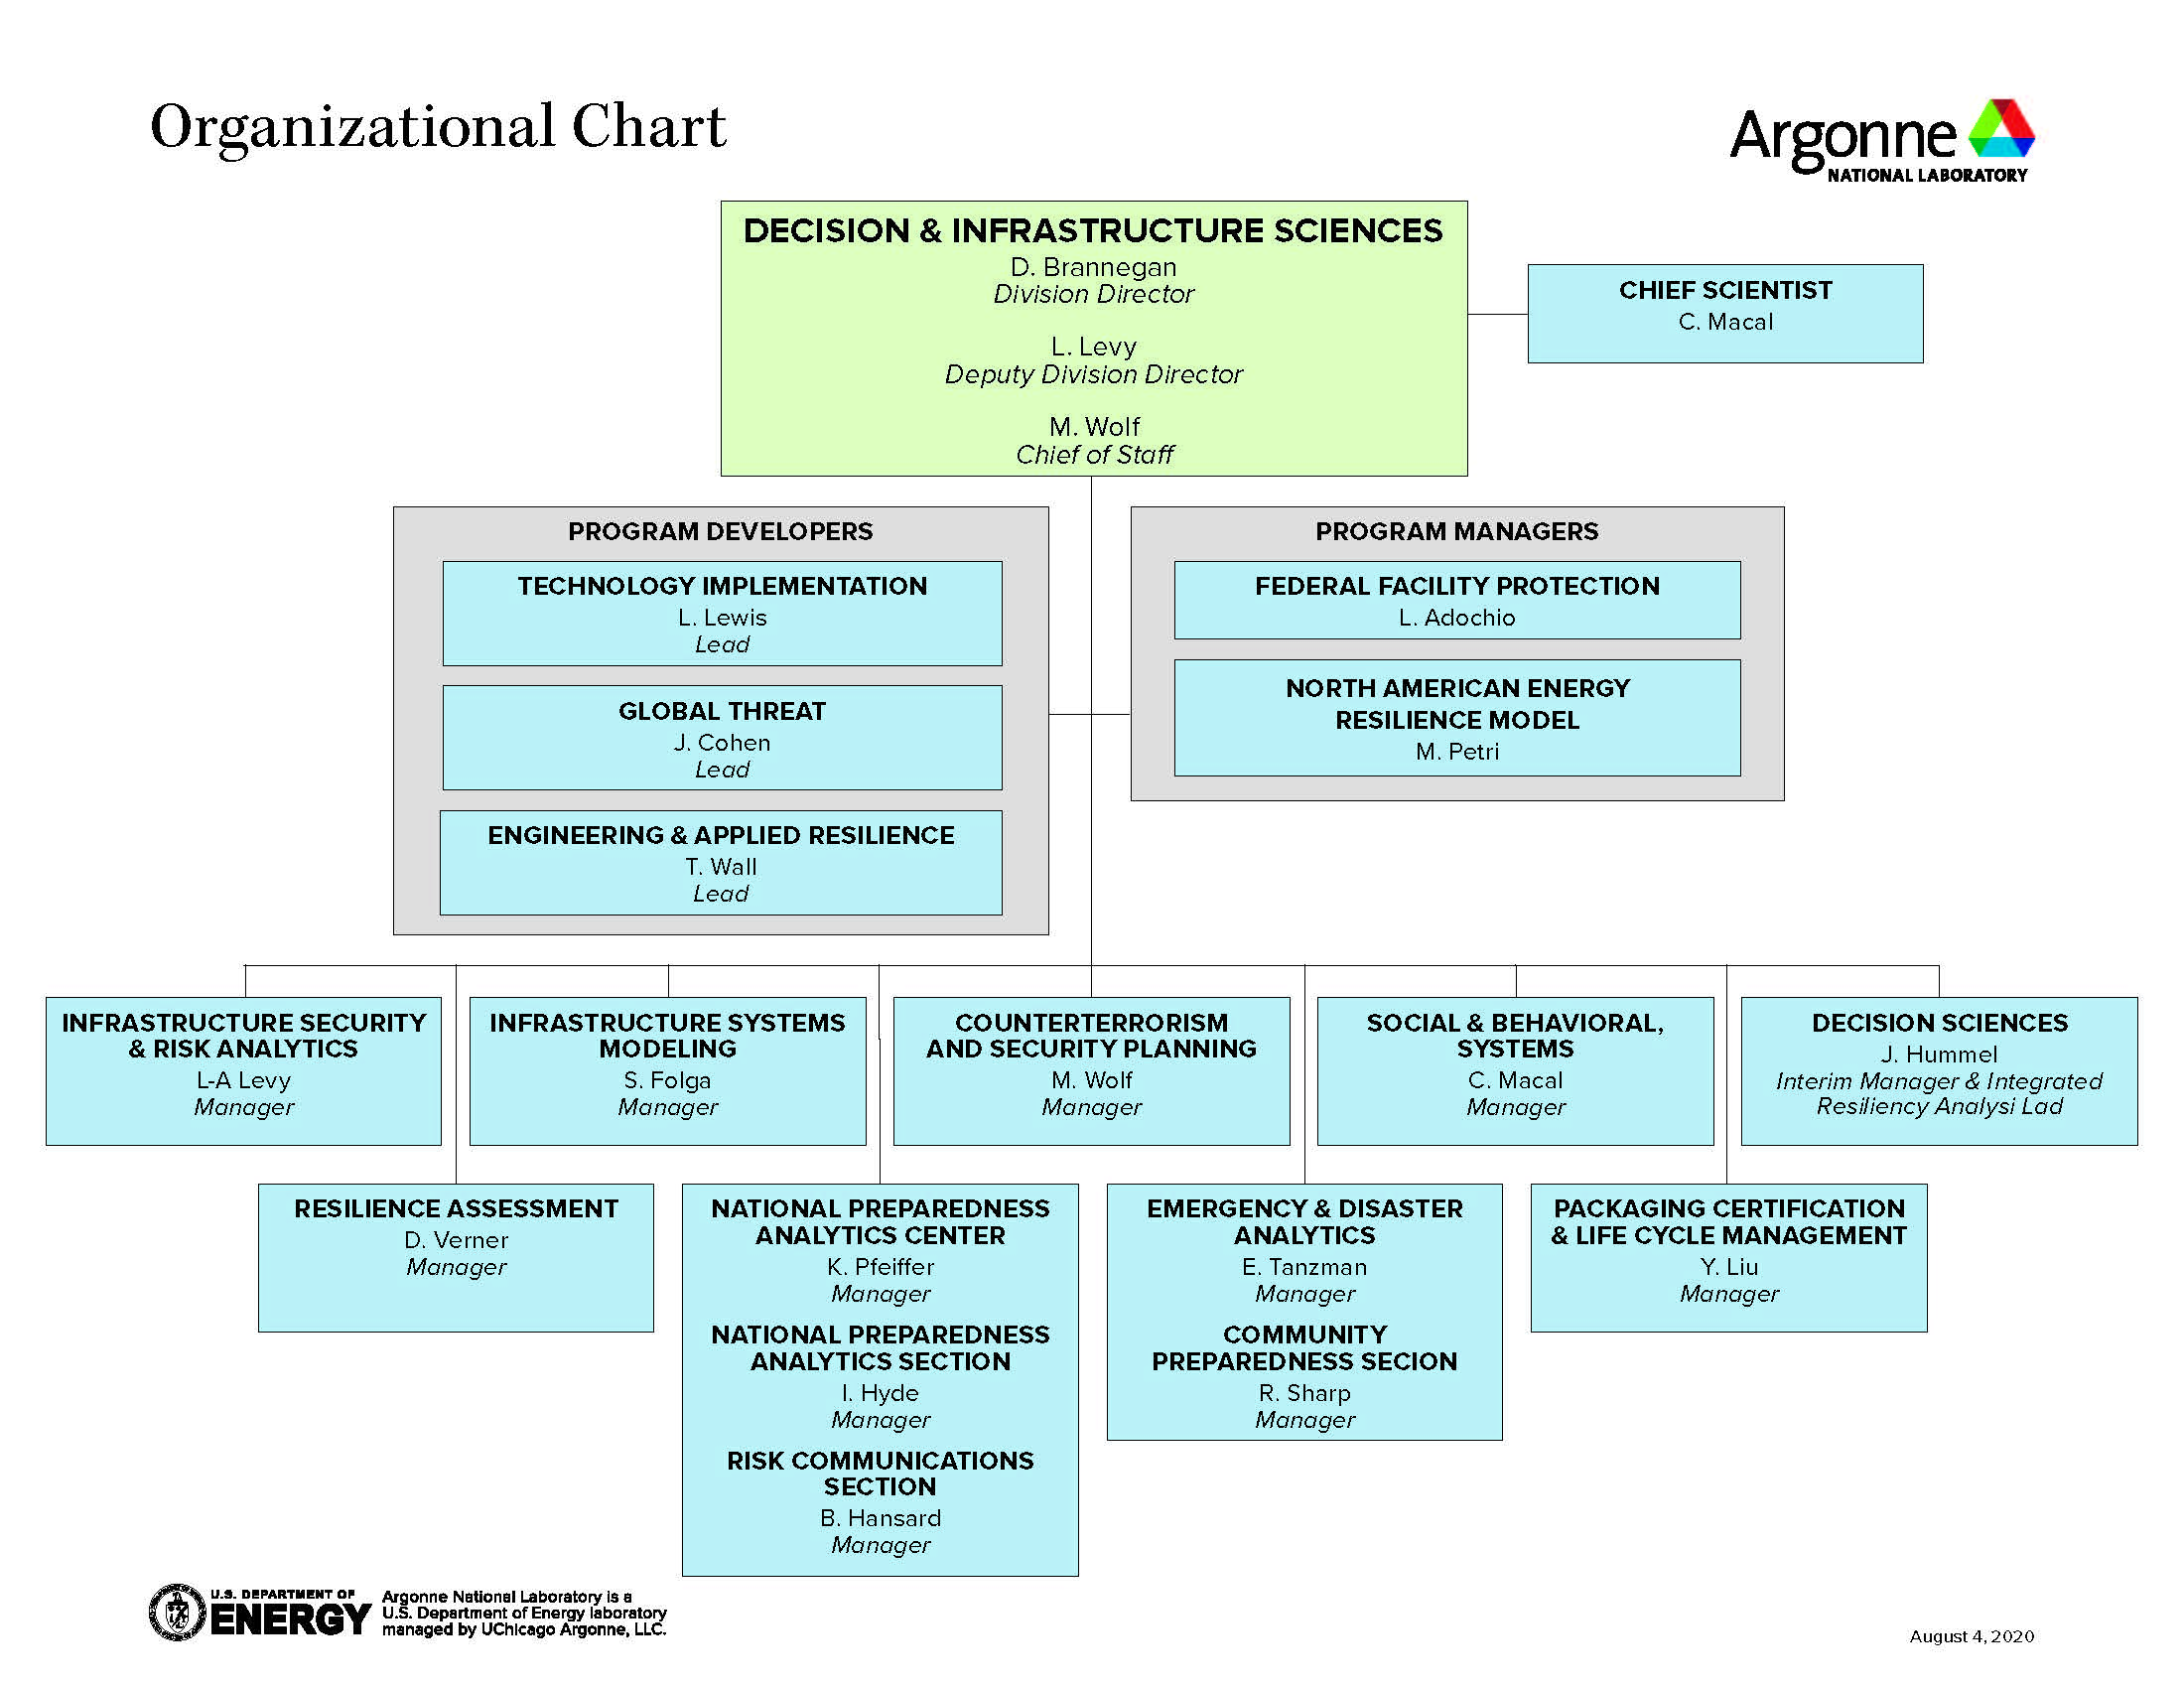 Organization chart of the Argonne Decision & Infrastructure Scieinces division